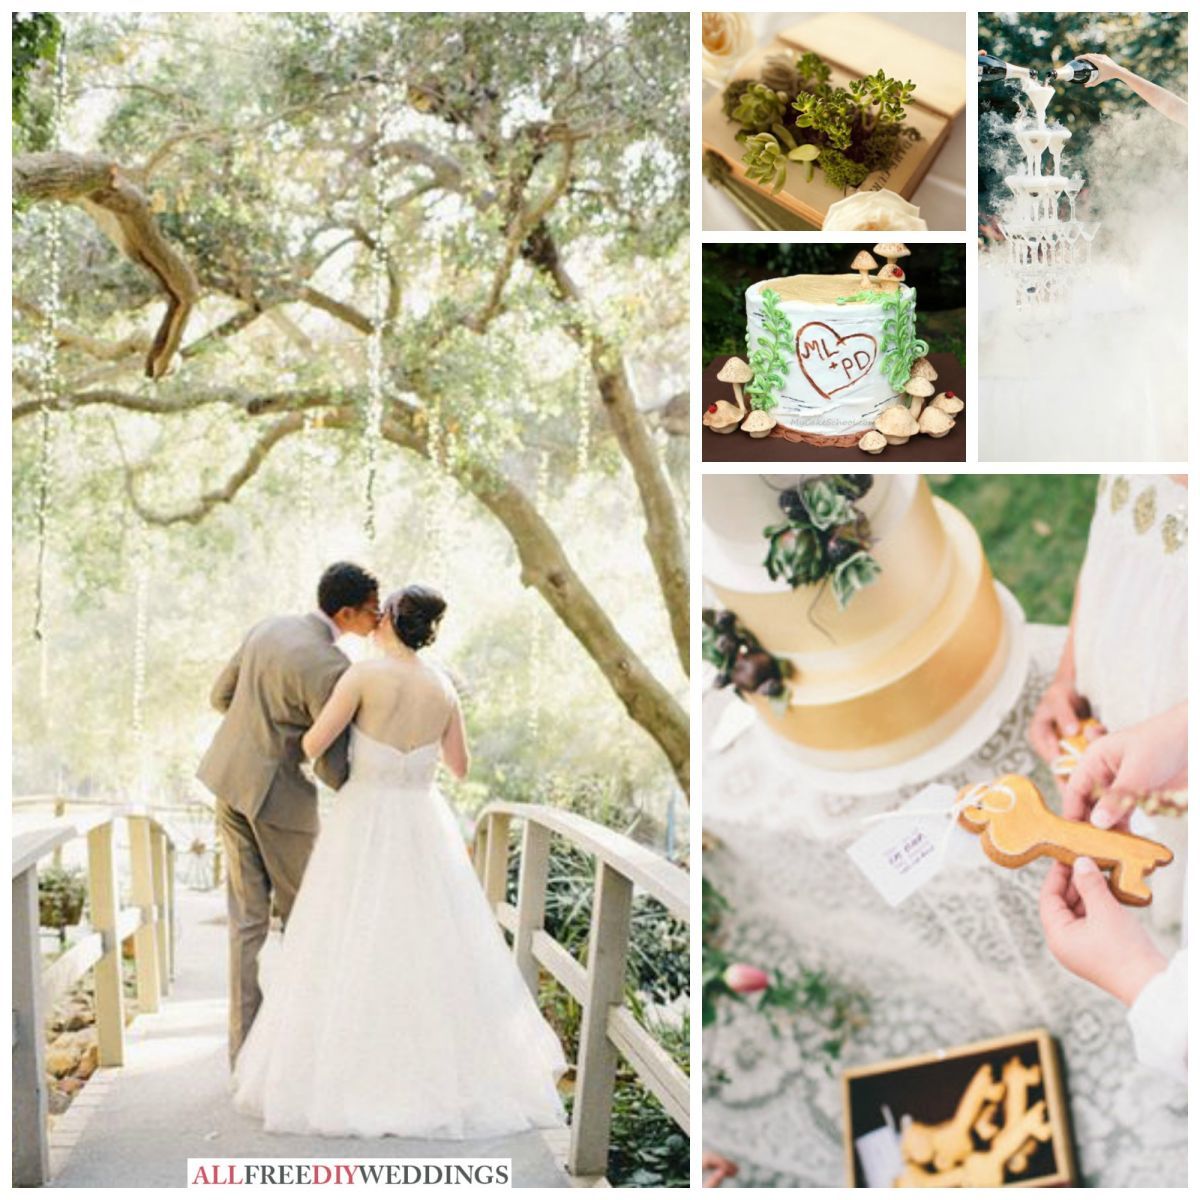 If You Liked This Article And Are Looking For More Magical Wedding Ideas,  Check Out The Wedding Themes: Fairytale Wedding Guide.